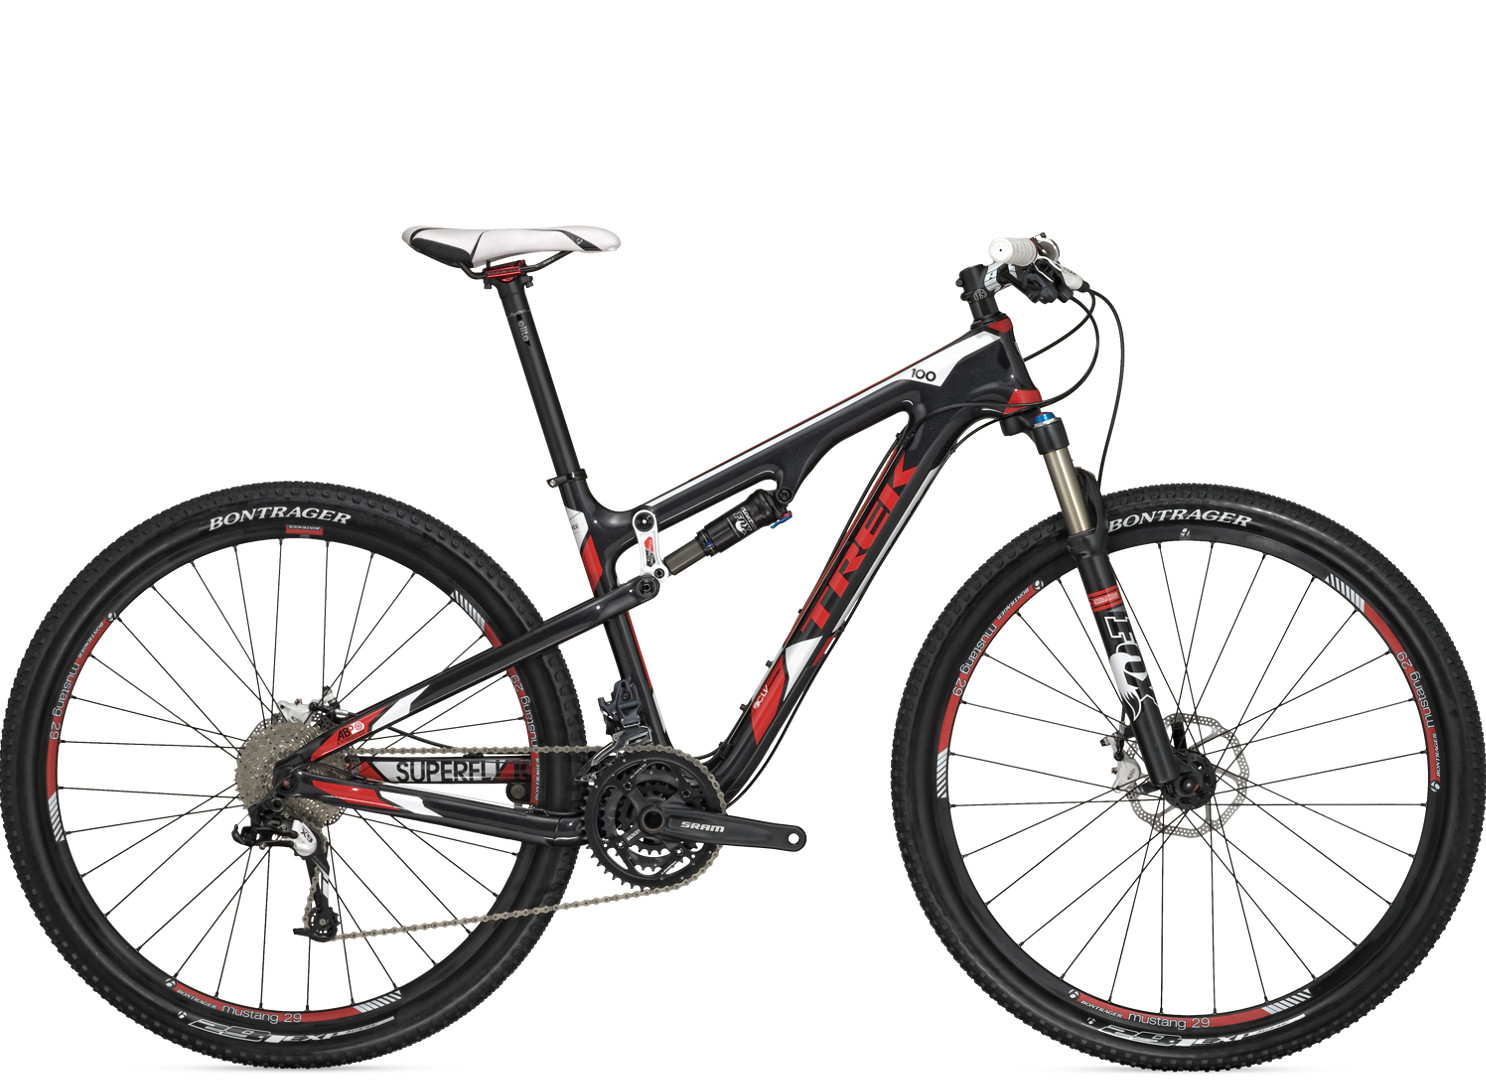 2012 Trek Superfly 100 Bike 26931